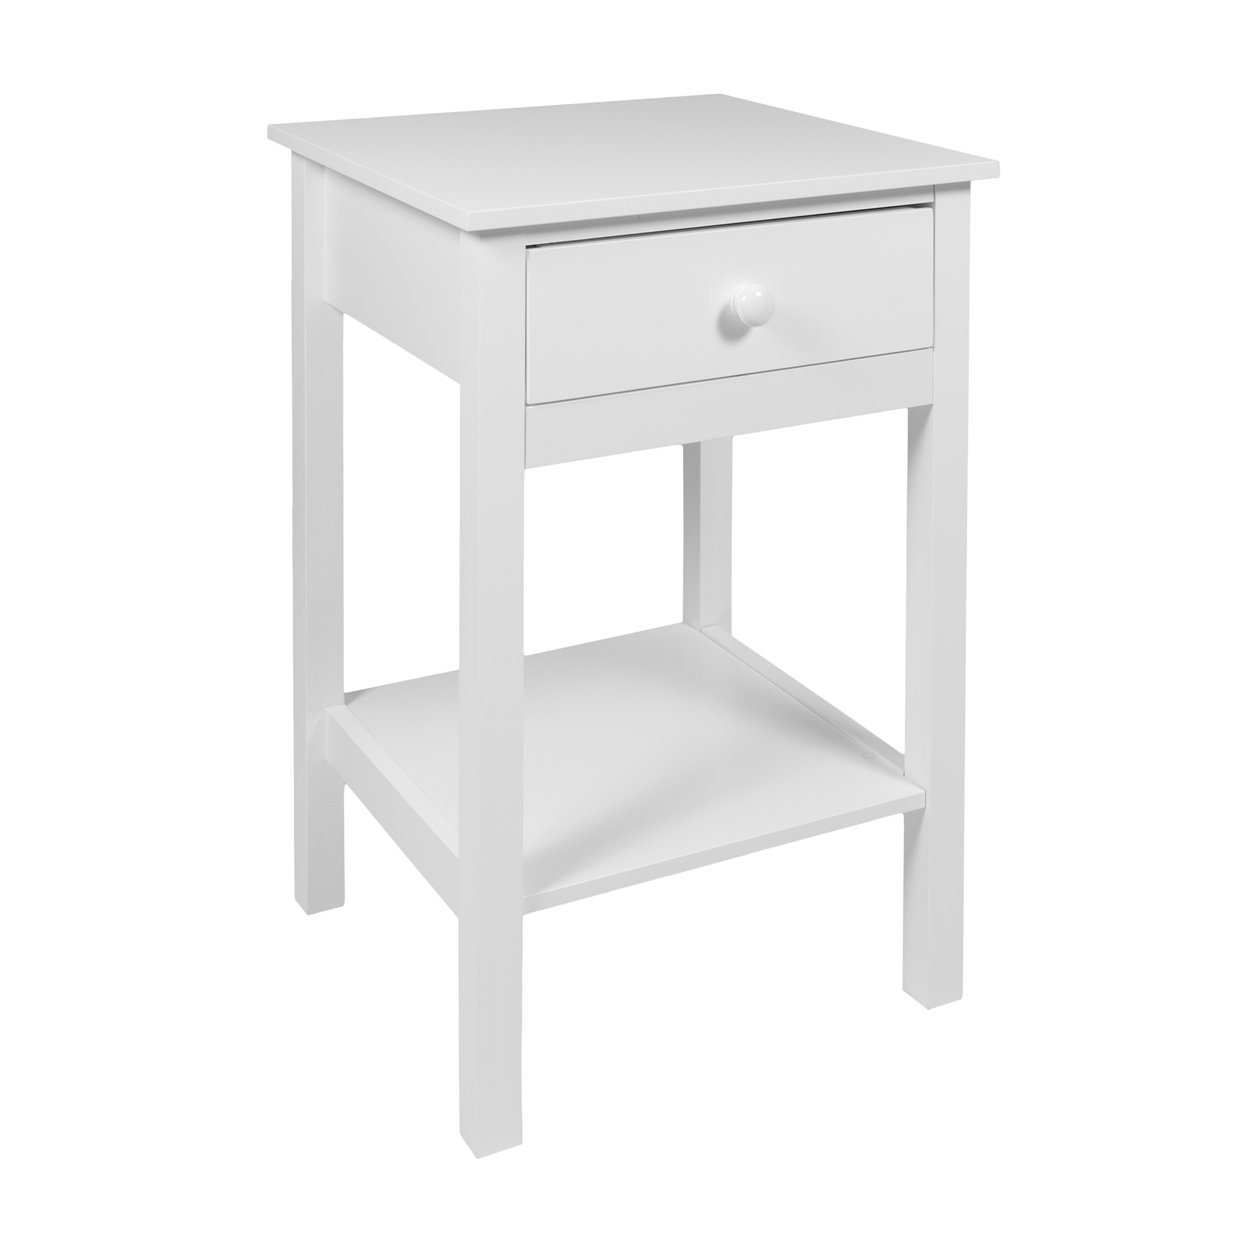 Amazon.co.uk: Bedside Tables: Home & Kitchen